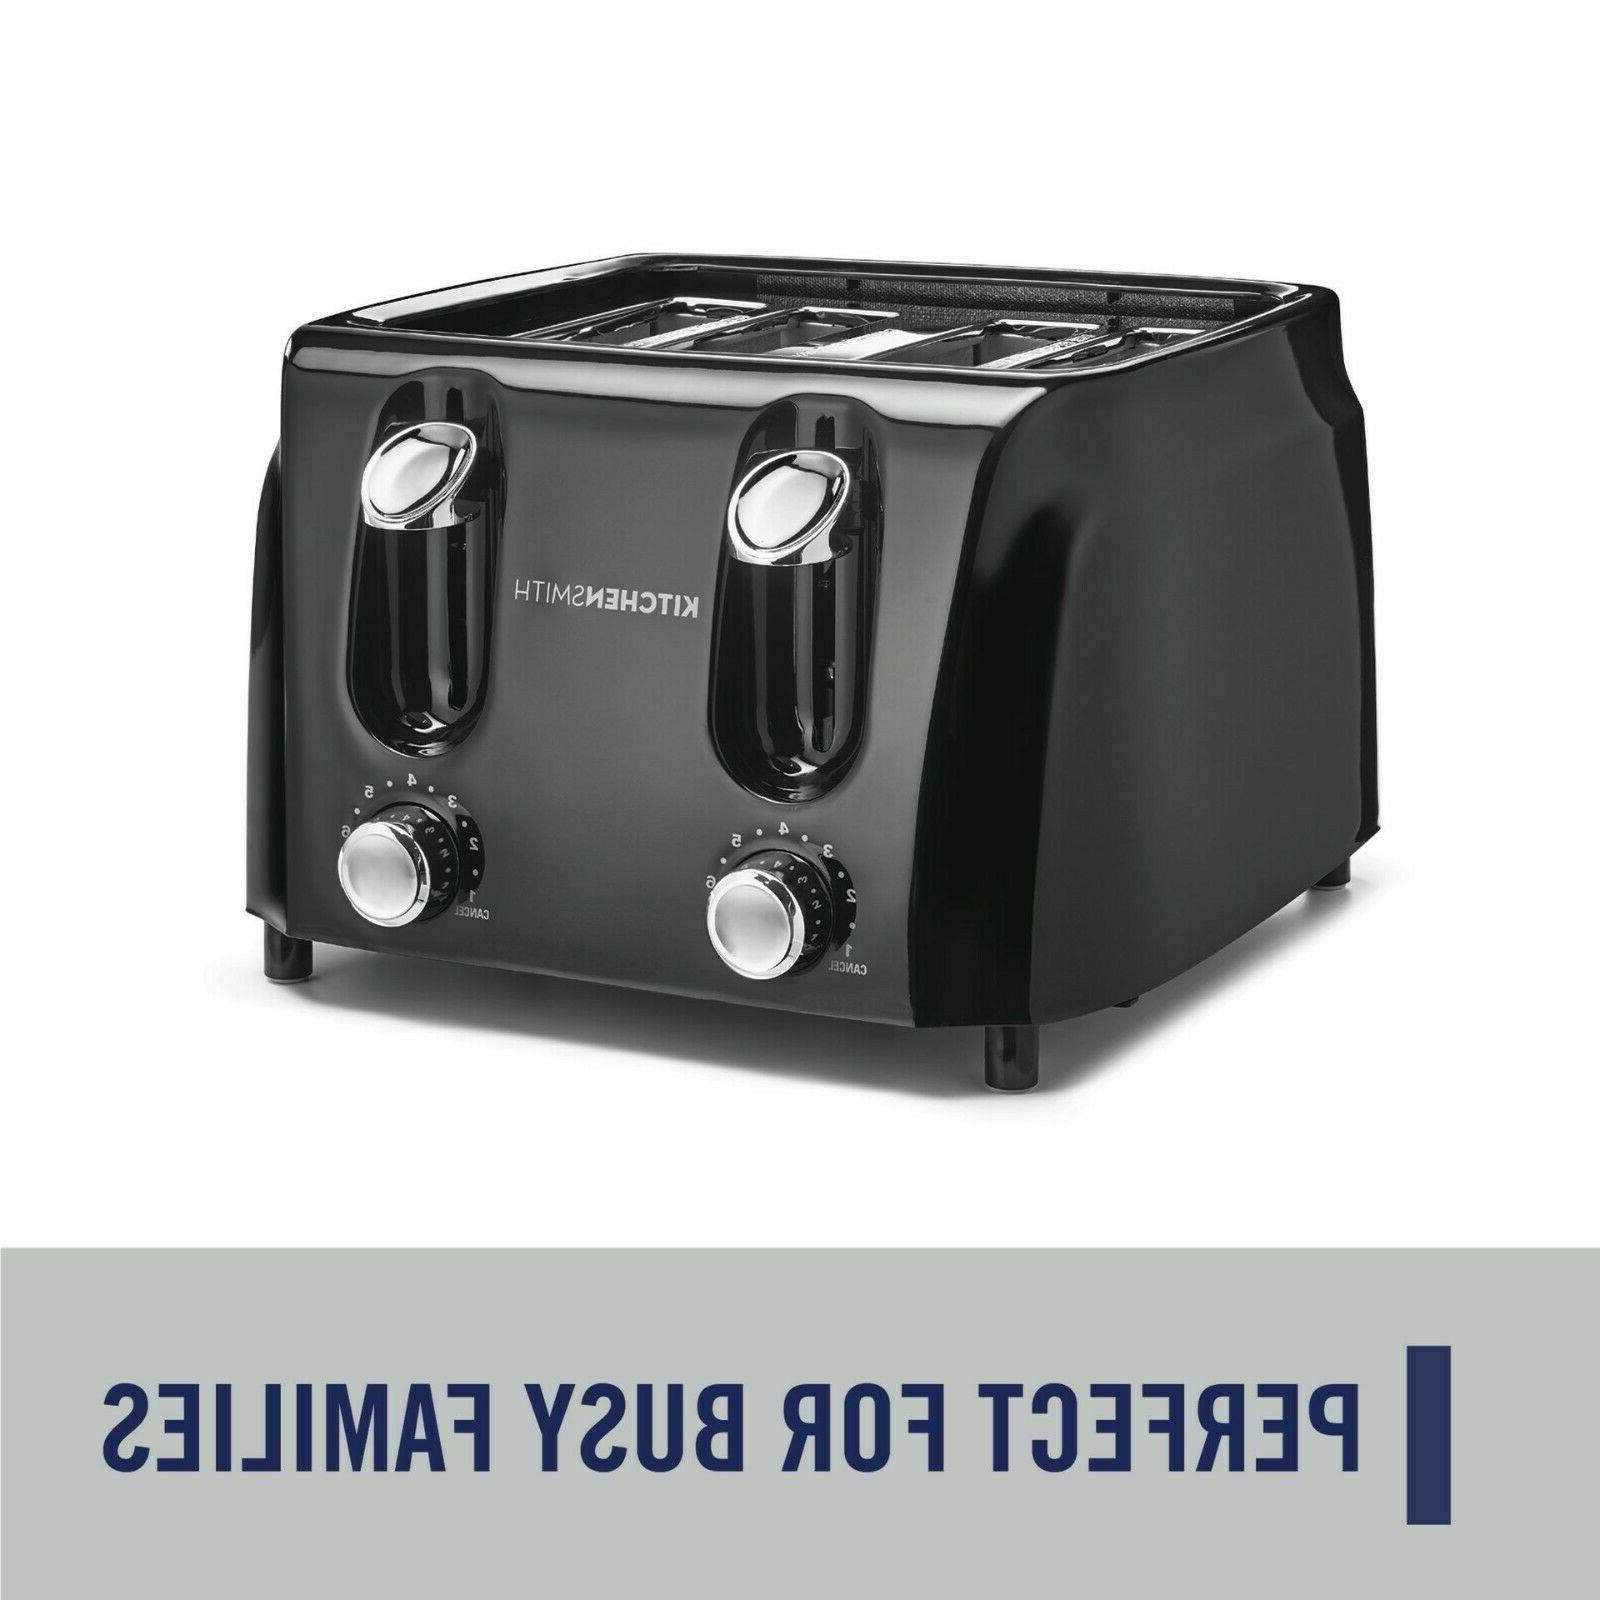 4 slice toaster 6 browning settings extra